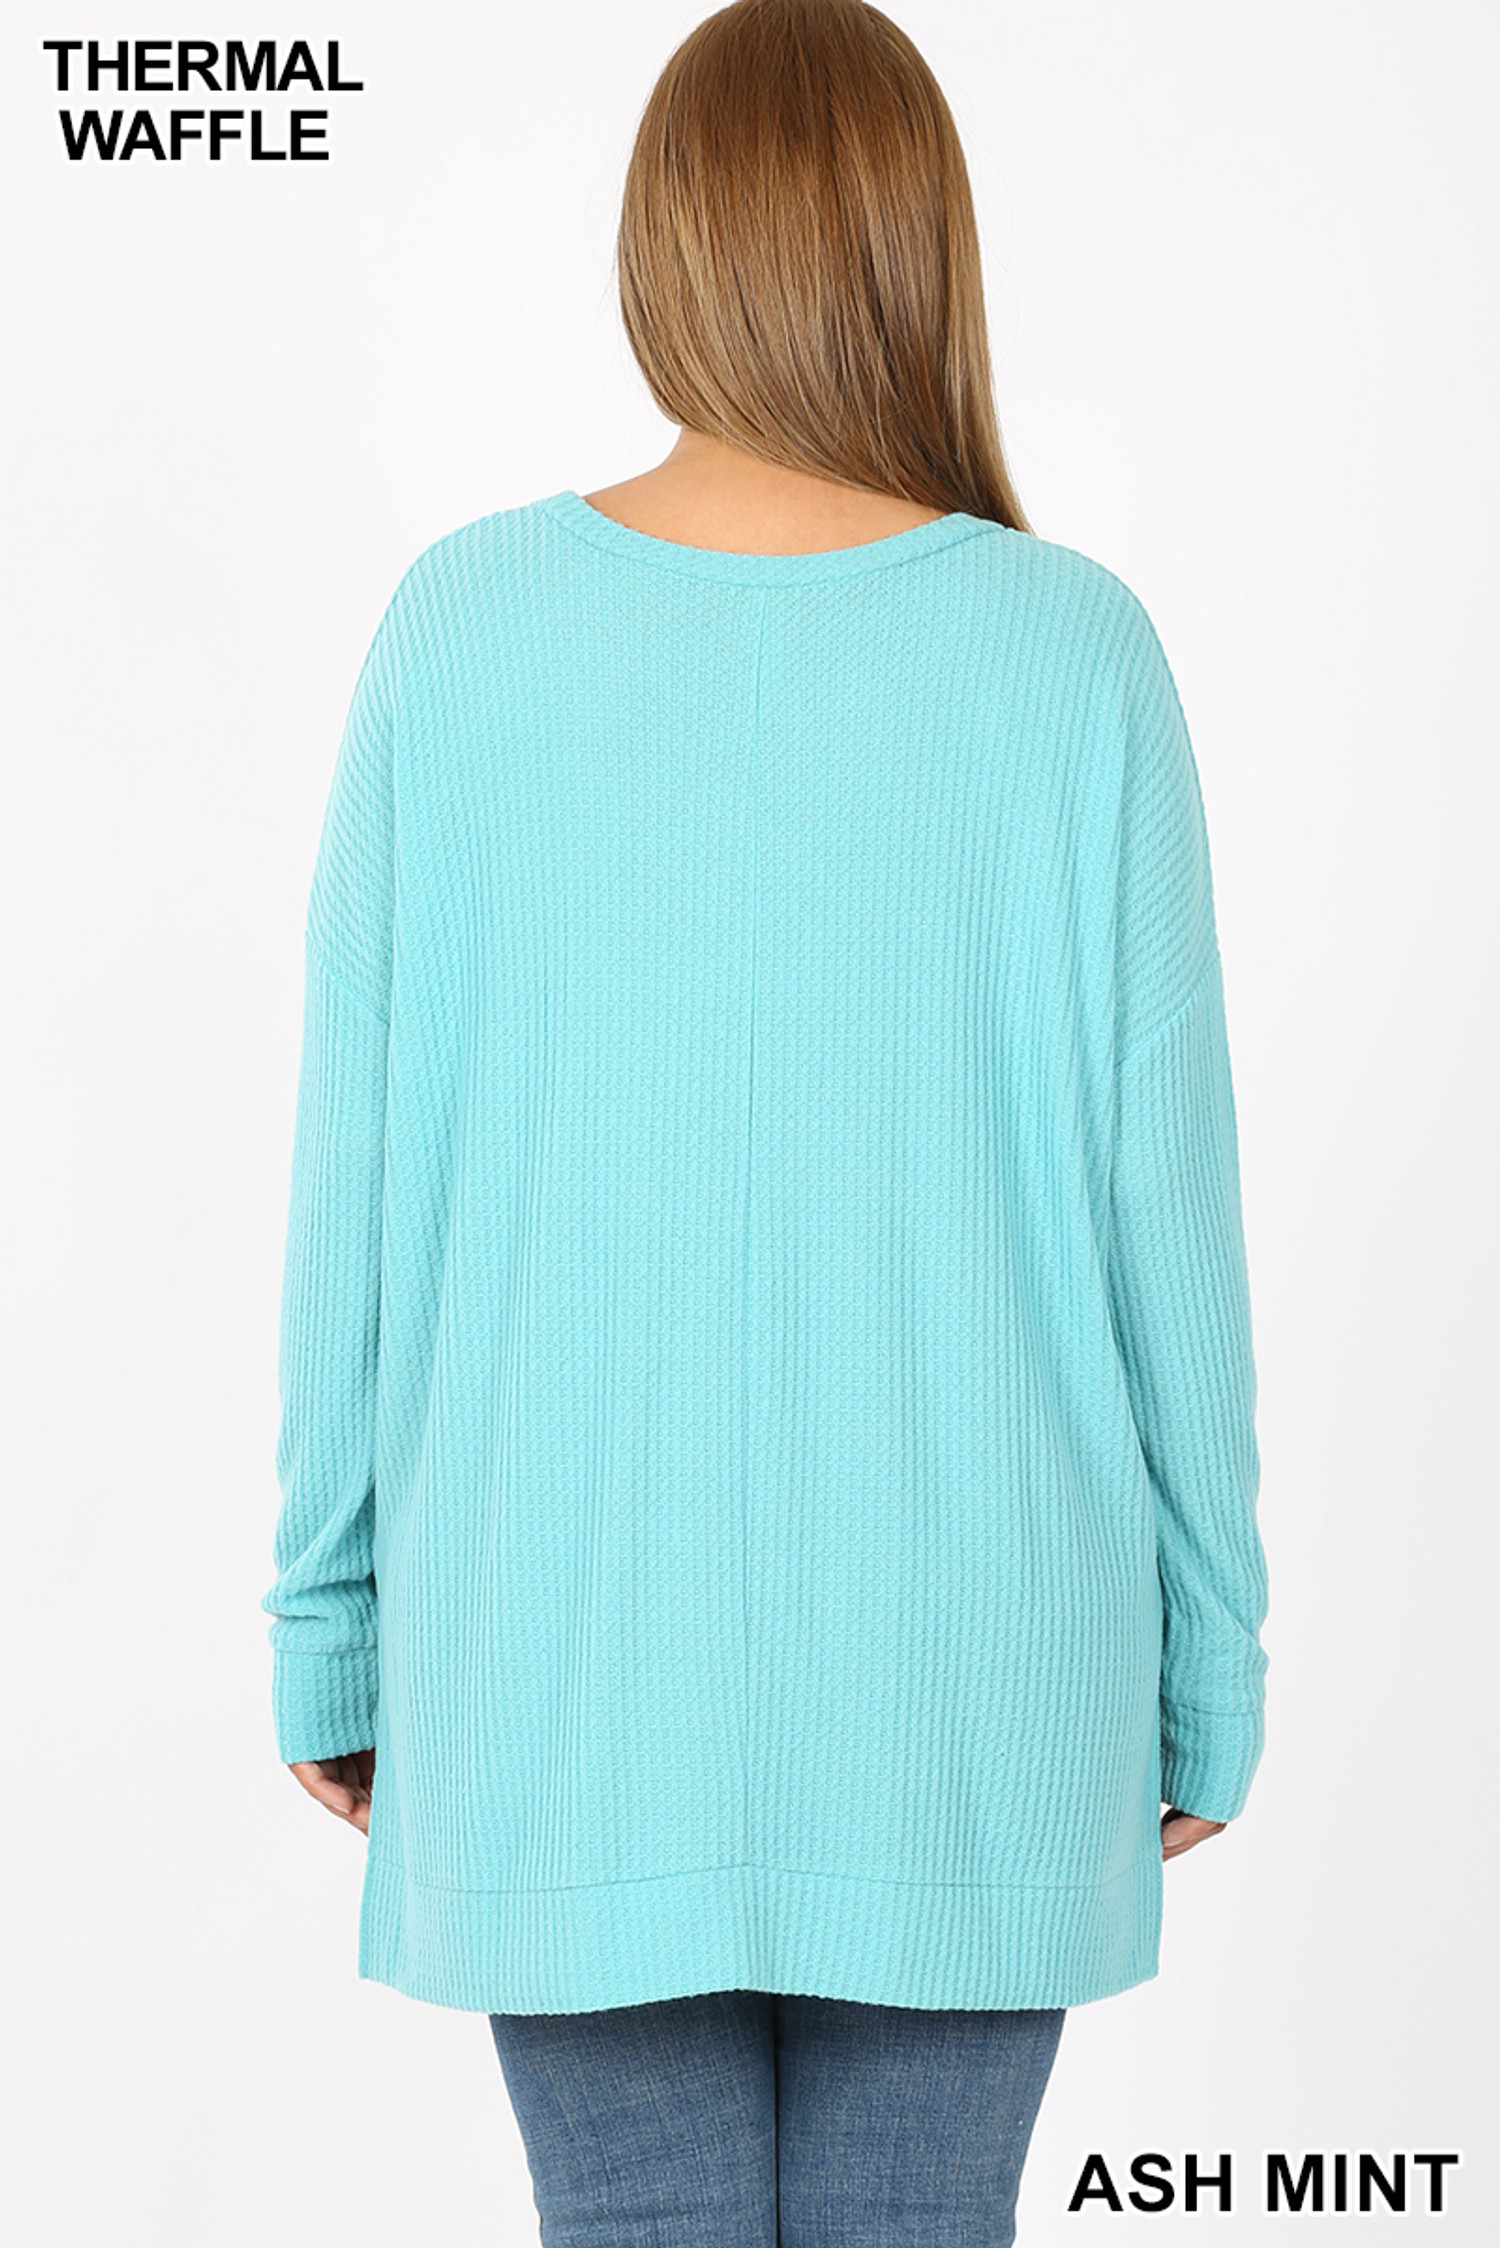 Back view image of Ash Mint Brushed Thermal Waffle Knit Round Neck Plus Size Sweater